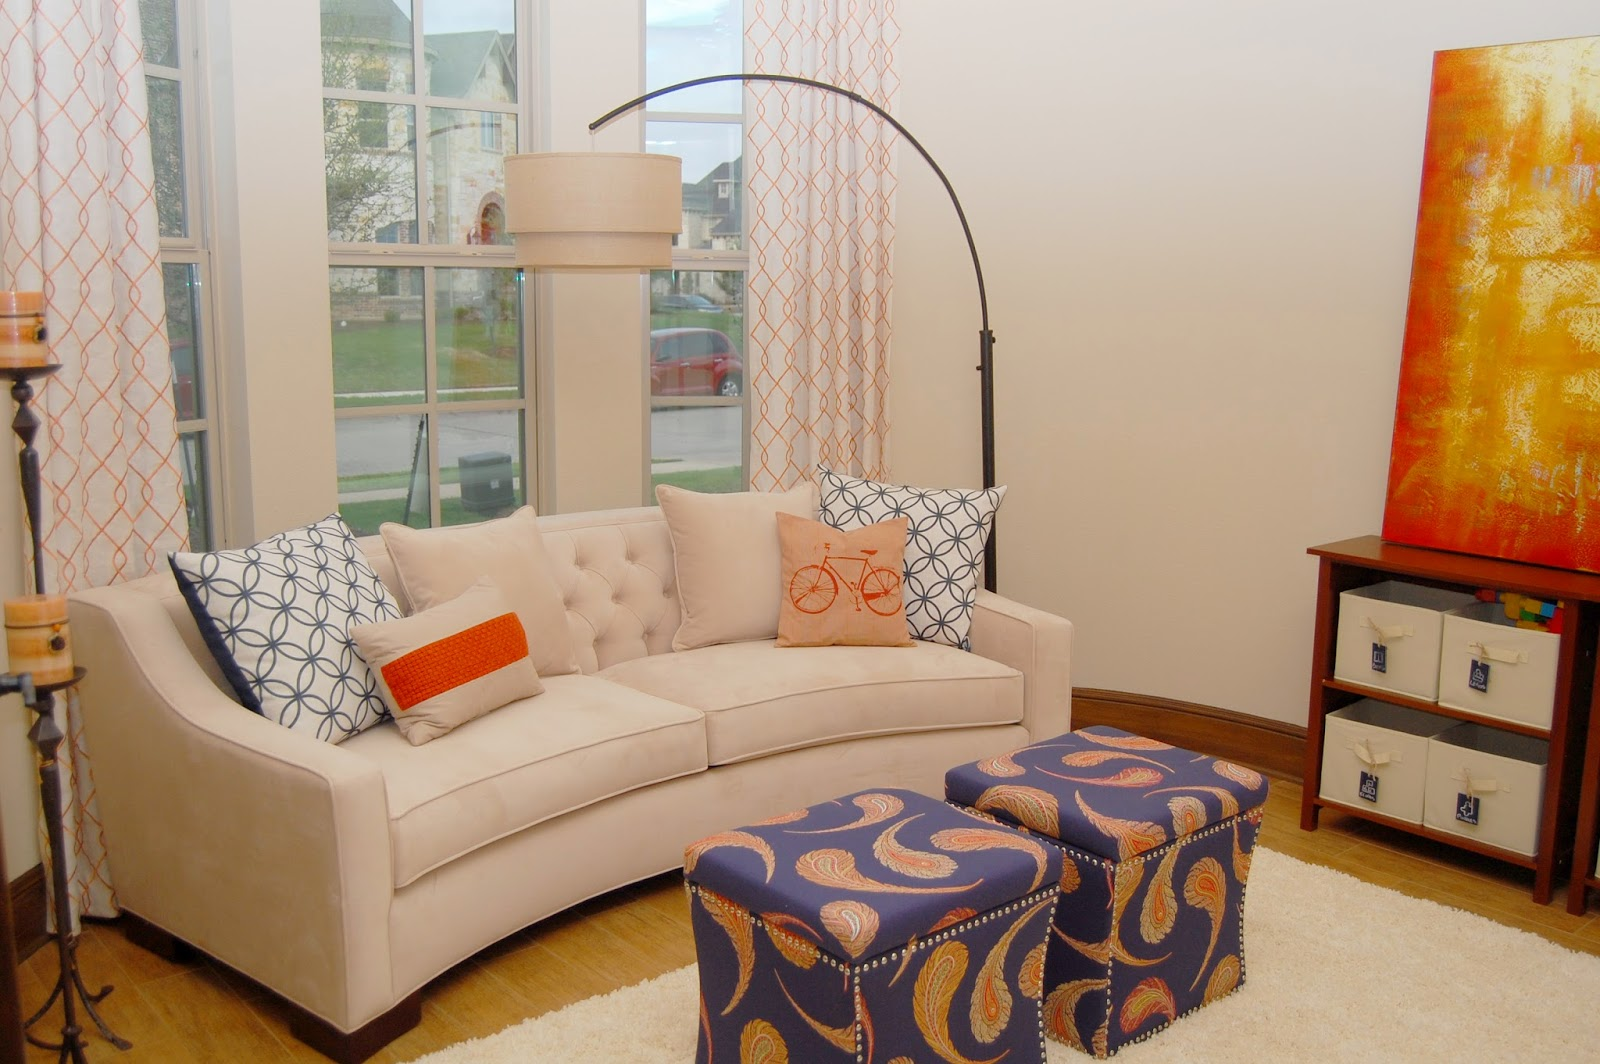 Style With Wisdom Beauty And Function Formal Living Space With Room For Kids